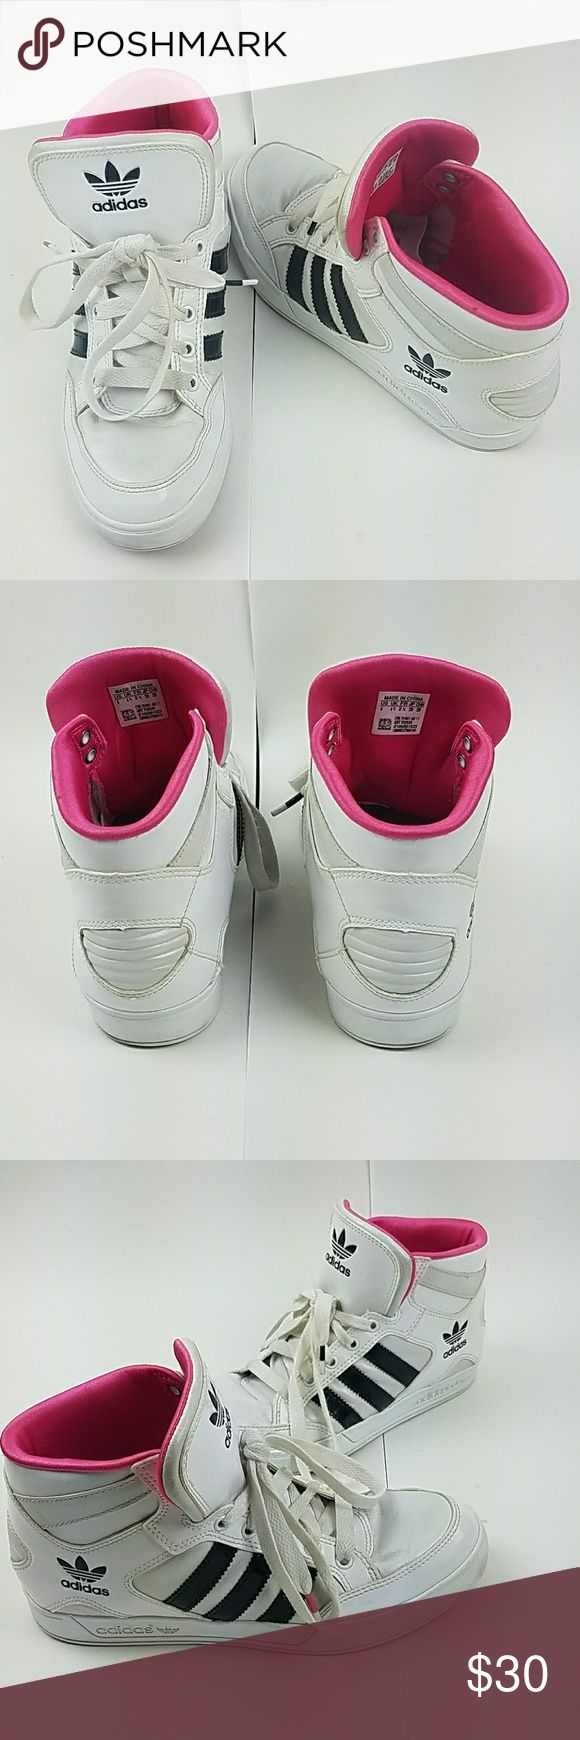 4e06a76cec7f ADIDAS White + Black + Hot Pink Sneakers US SIZE 5 ADIDAS White patent  leather Hightop